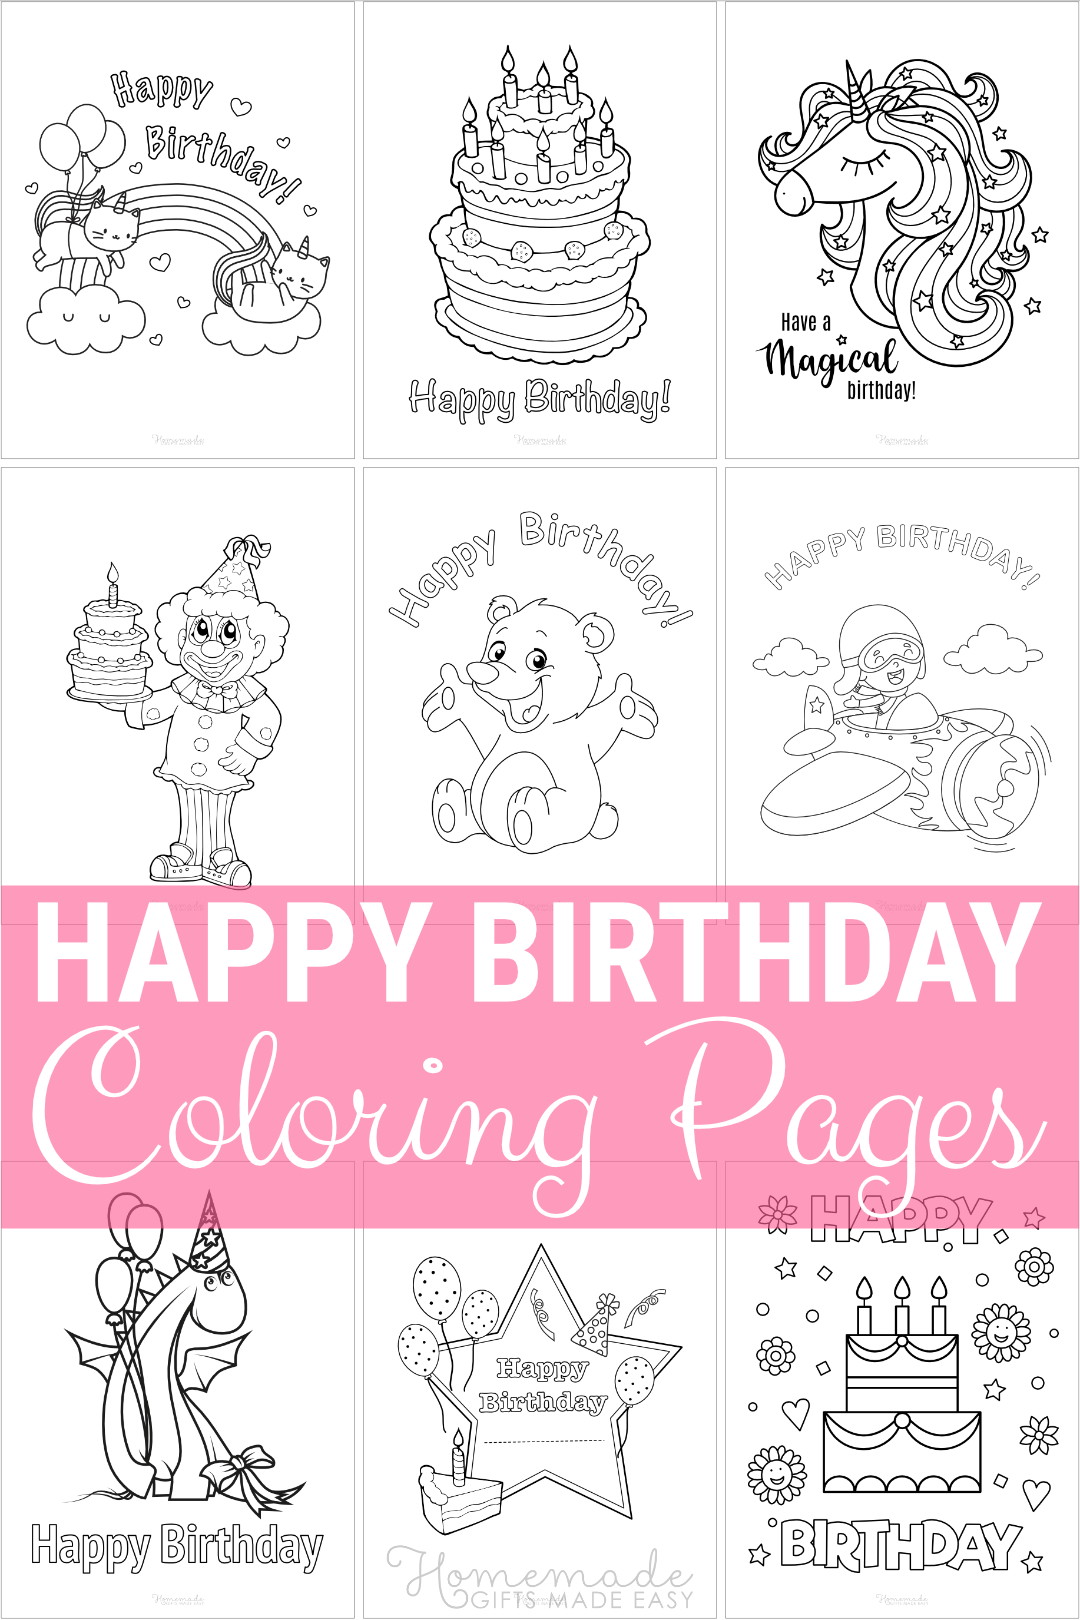 happy birthday coloring pages - star certificate